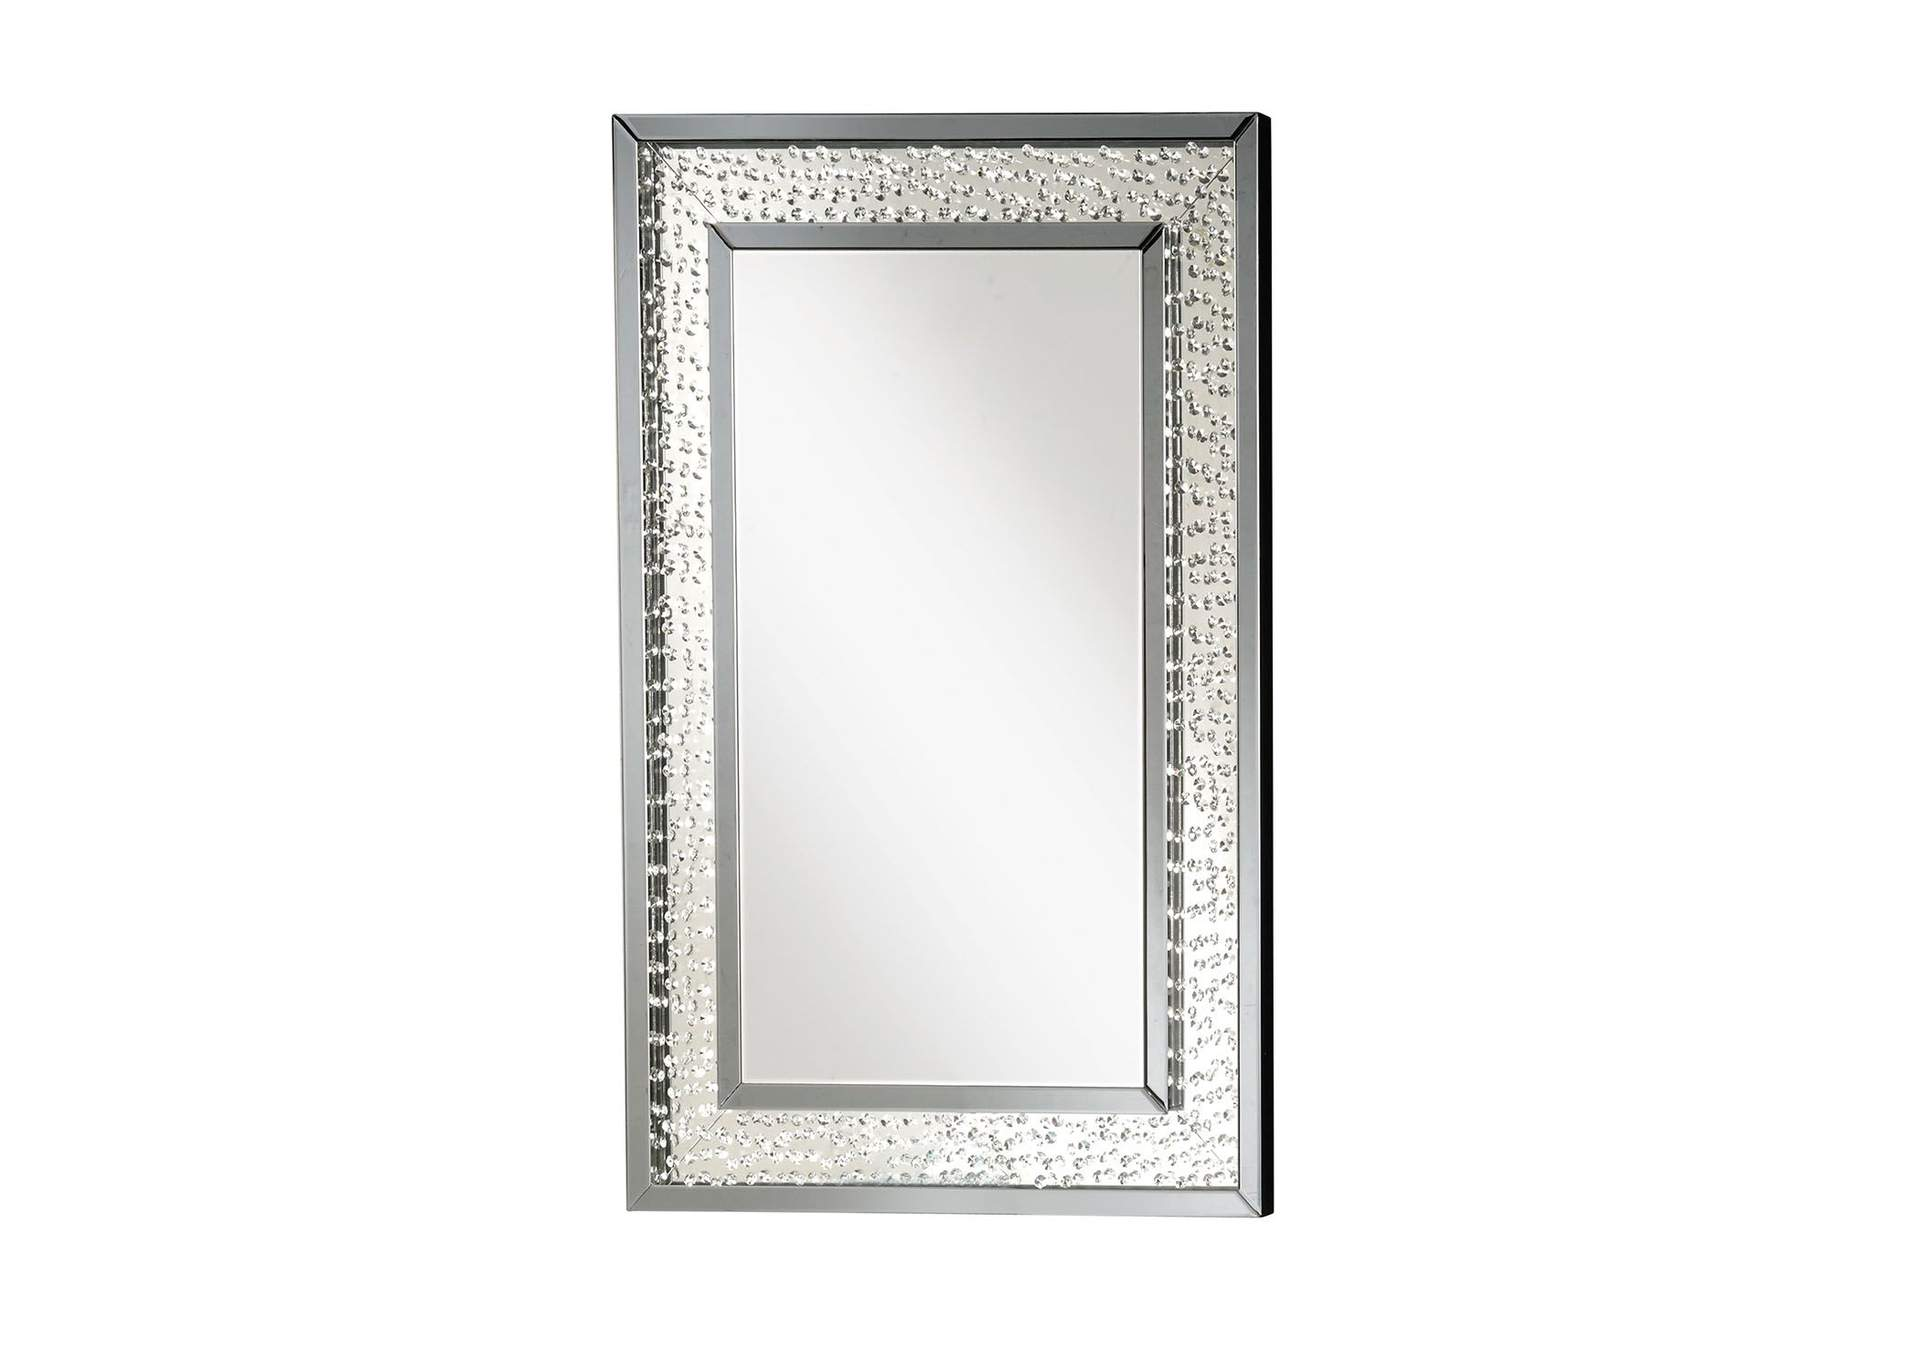 Nysa Mirrored & Faux Crystals Wall Decor,Acme